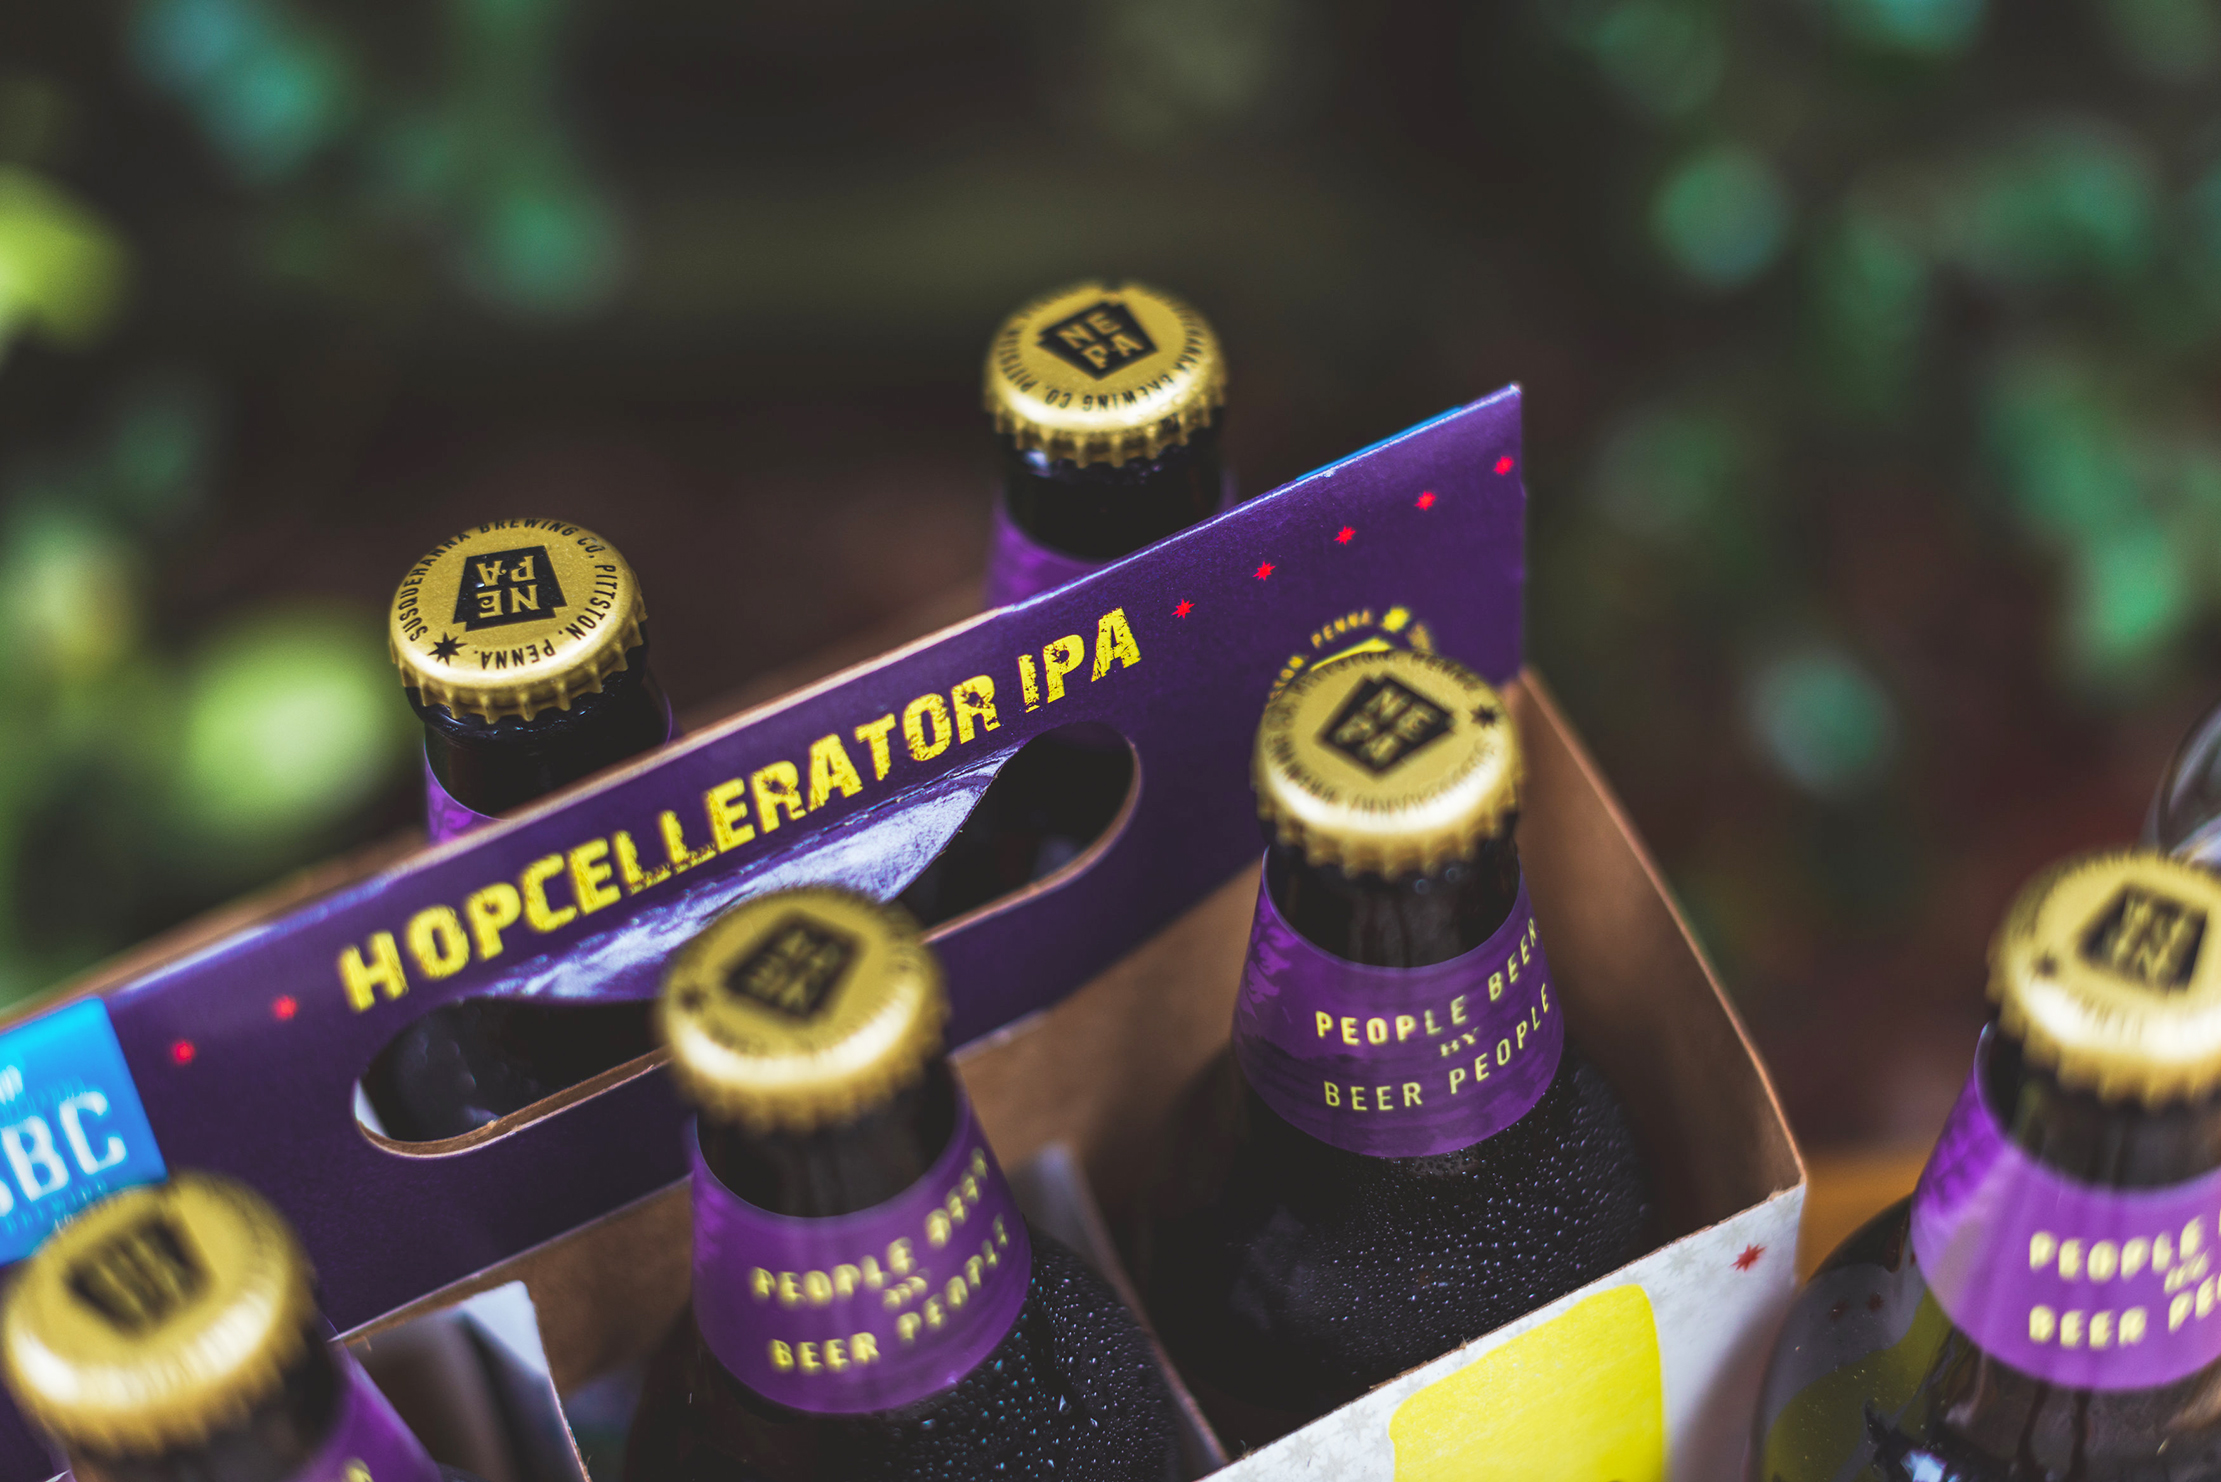 Susquehanna Brewing Co. Hopcellerator Designed by Just Make Things